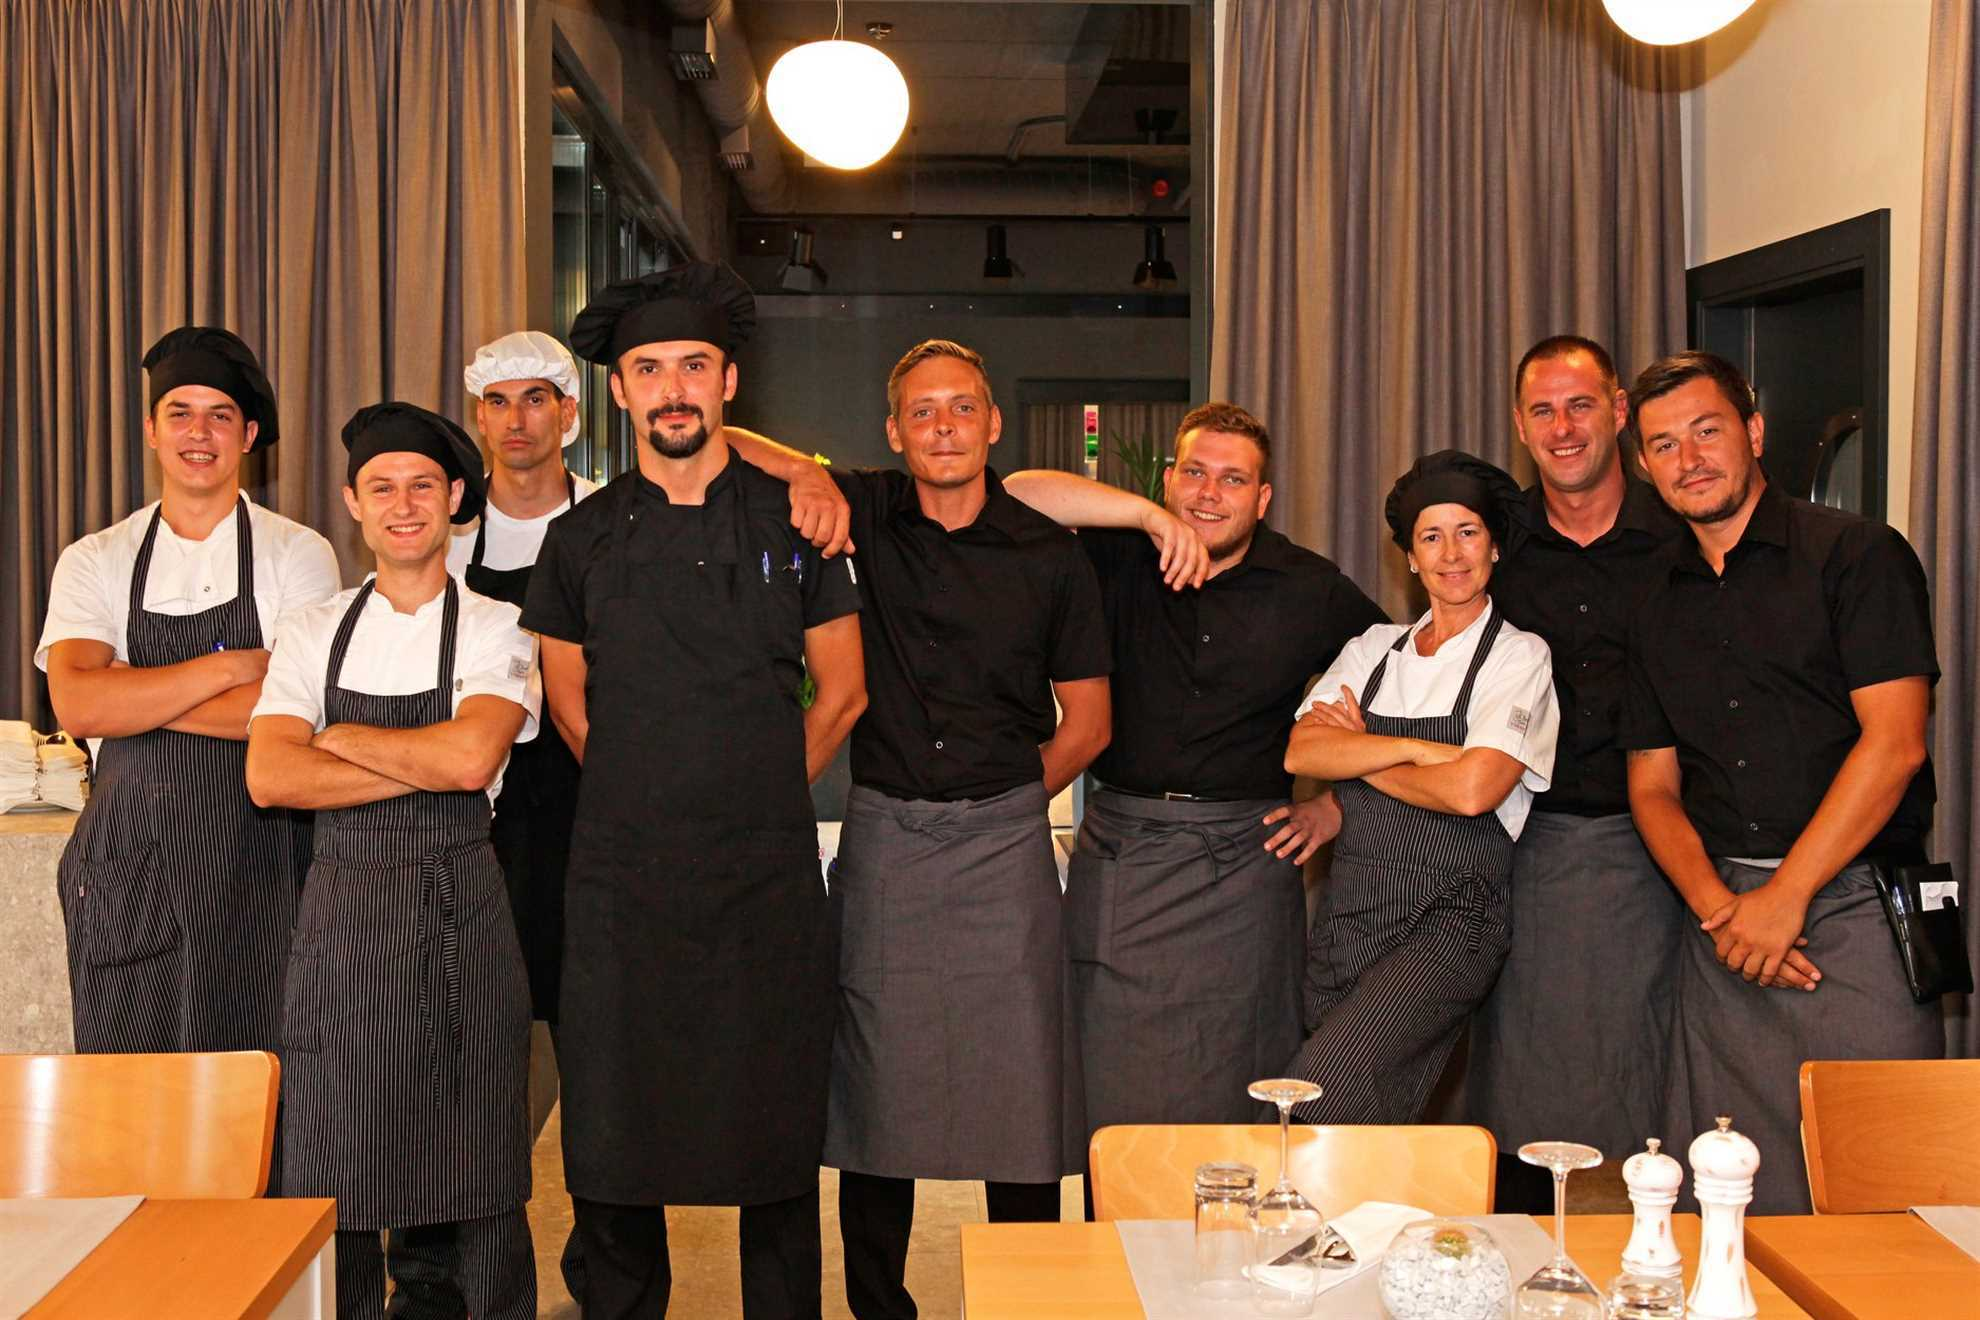 The staff of Restaurant Aria, Brac